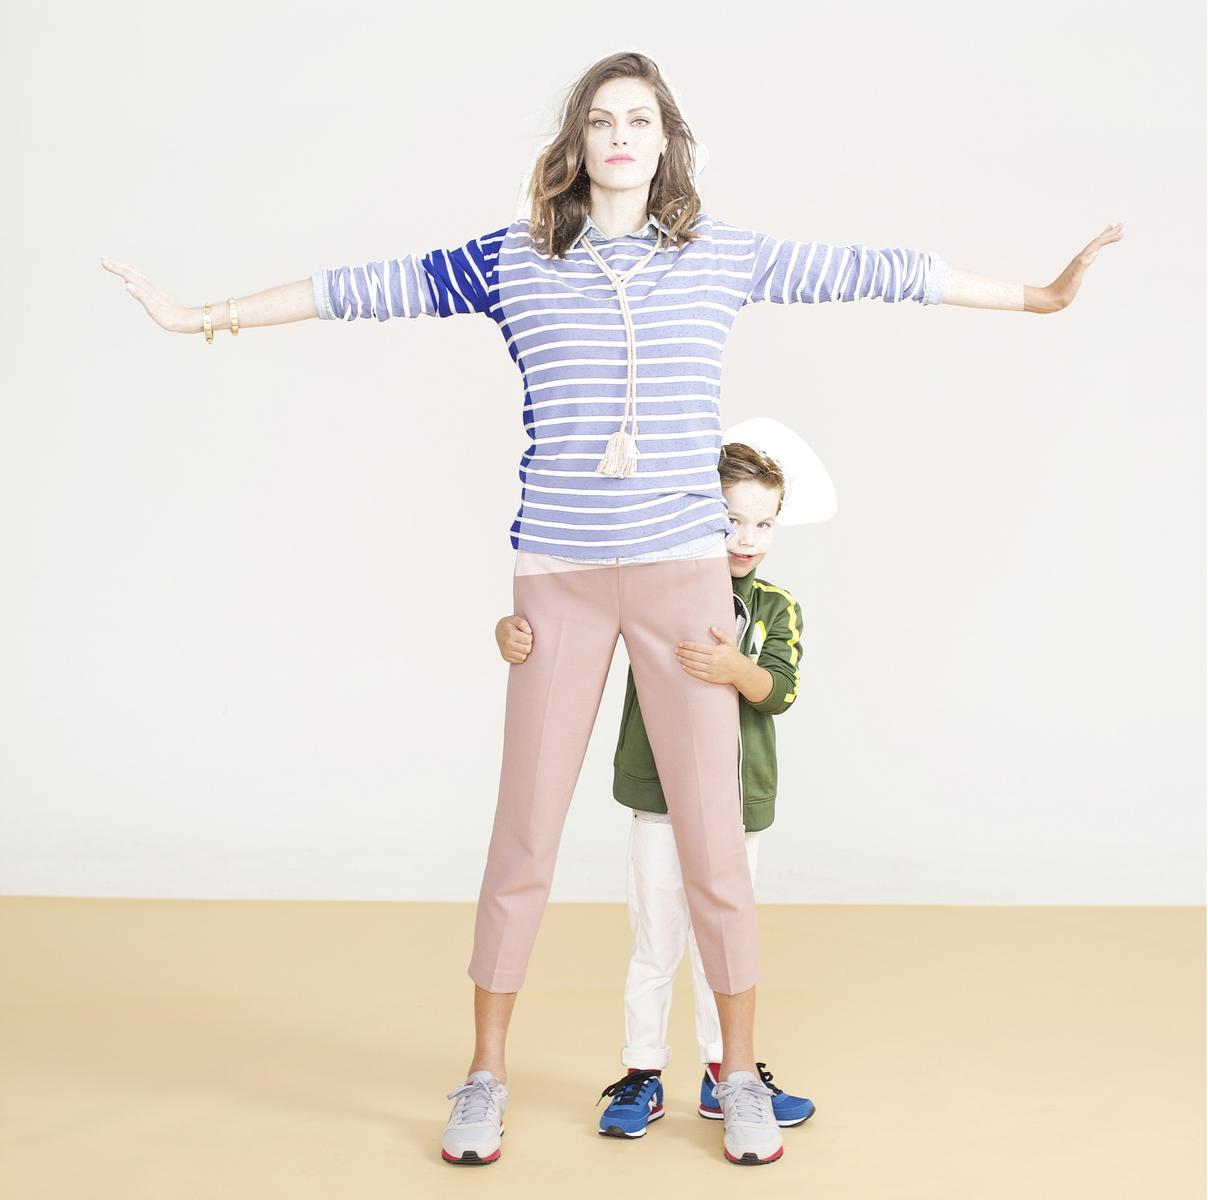 mom standing in front of child